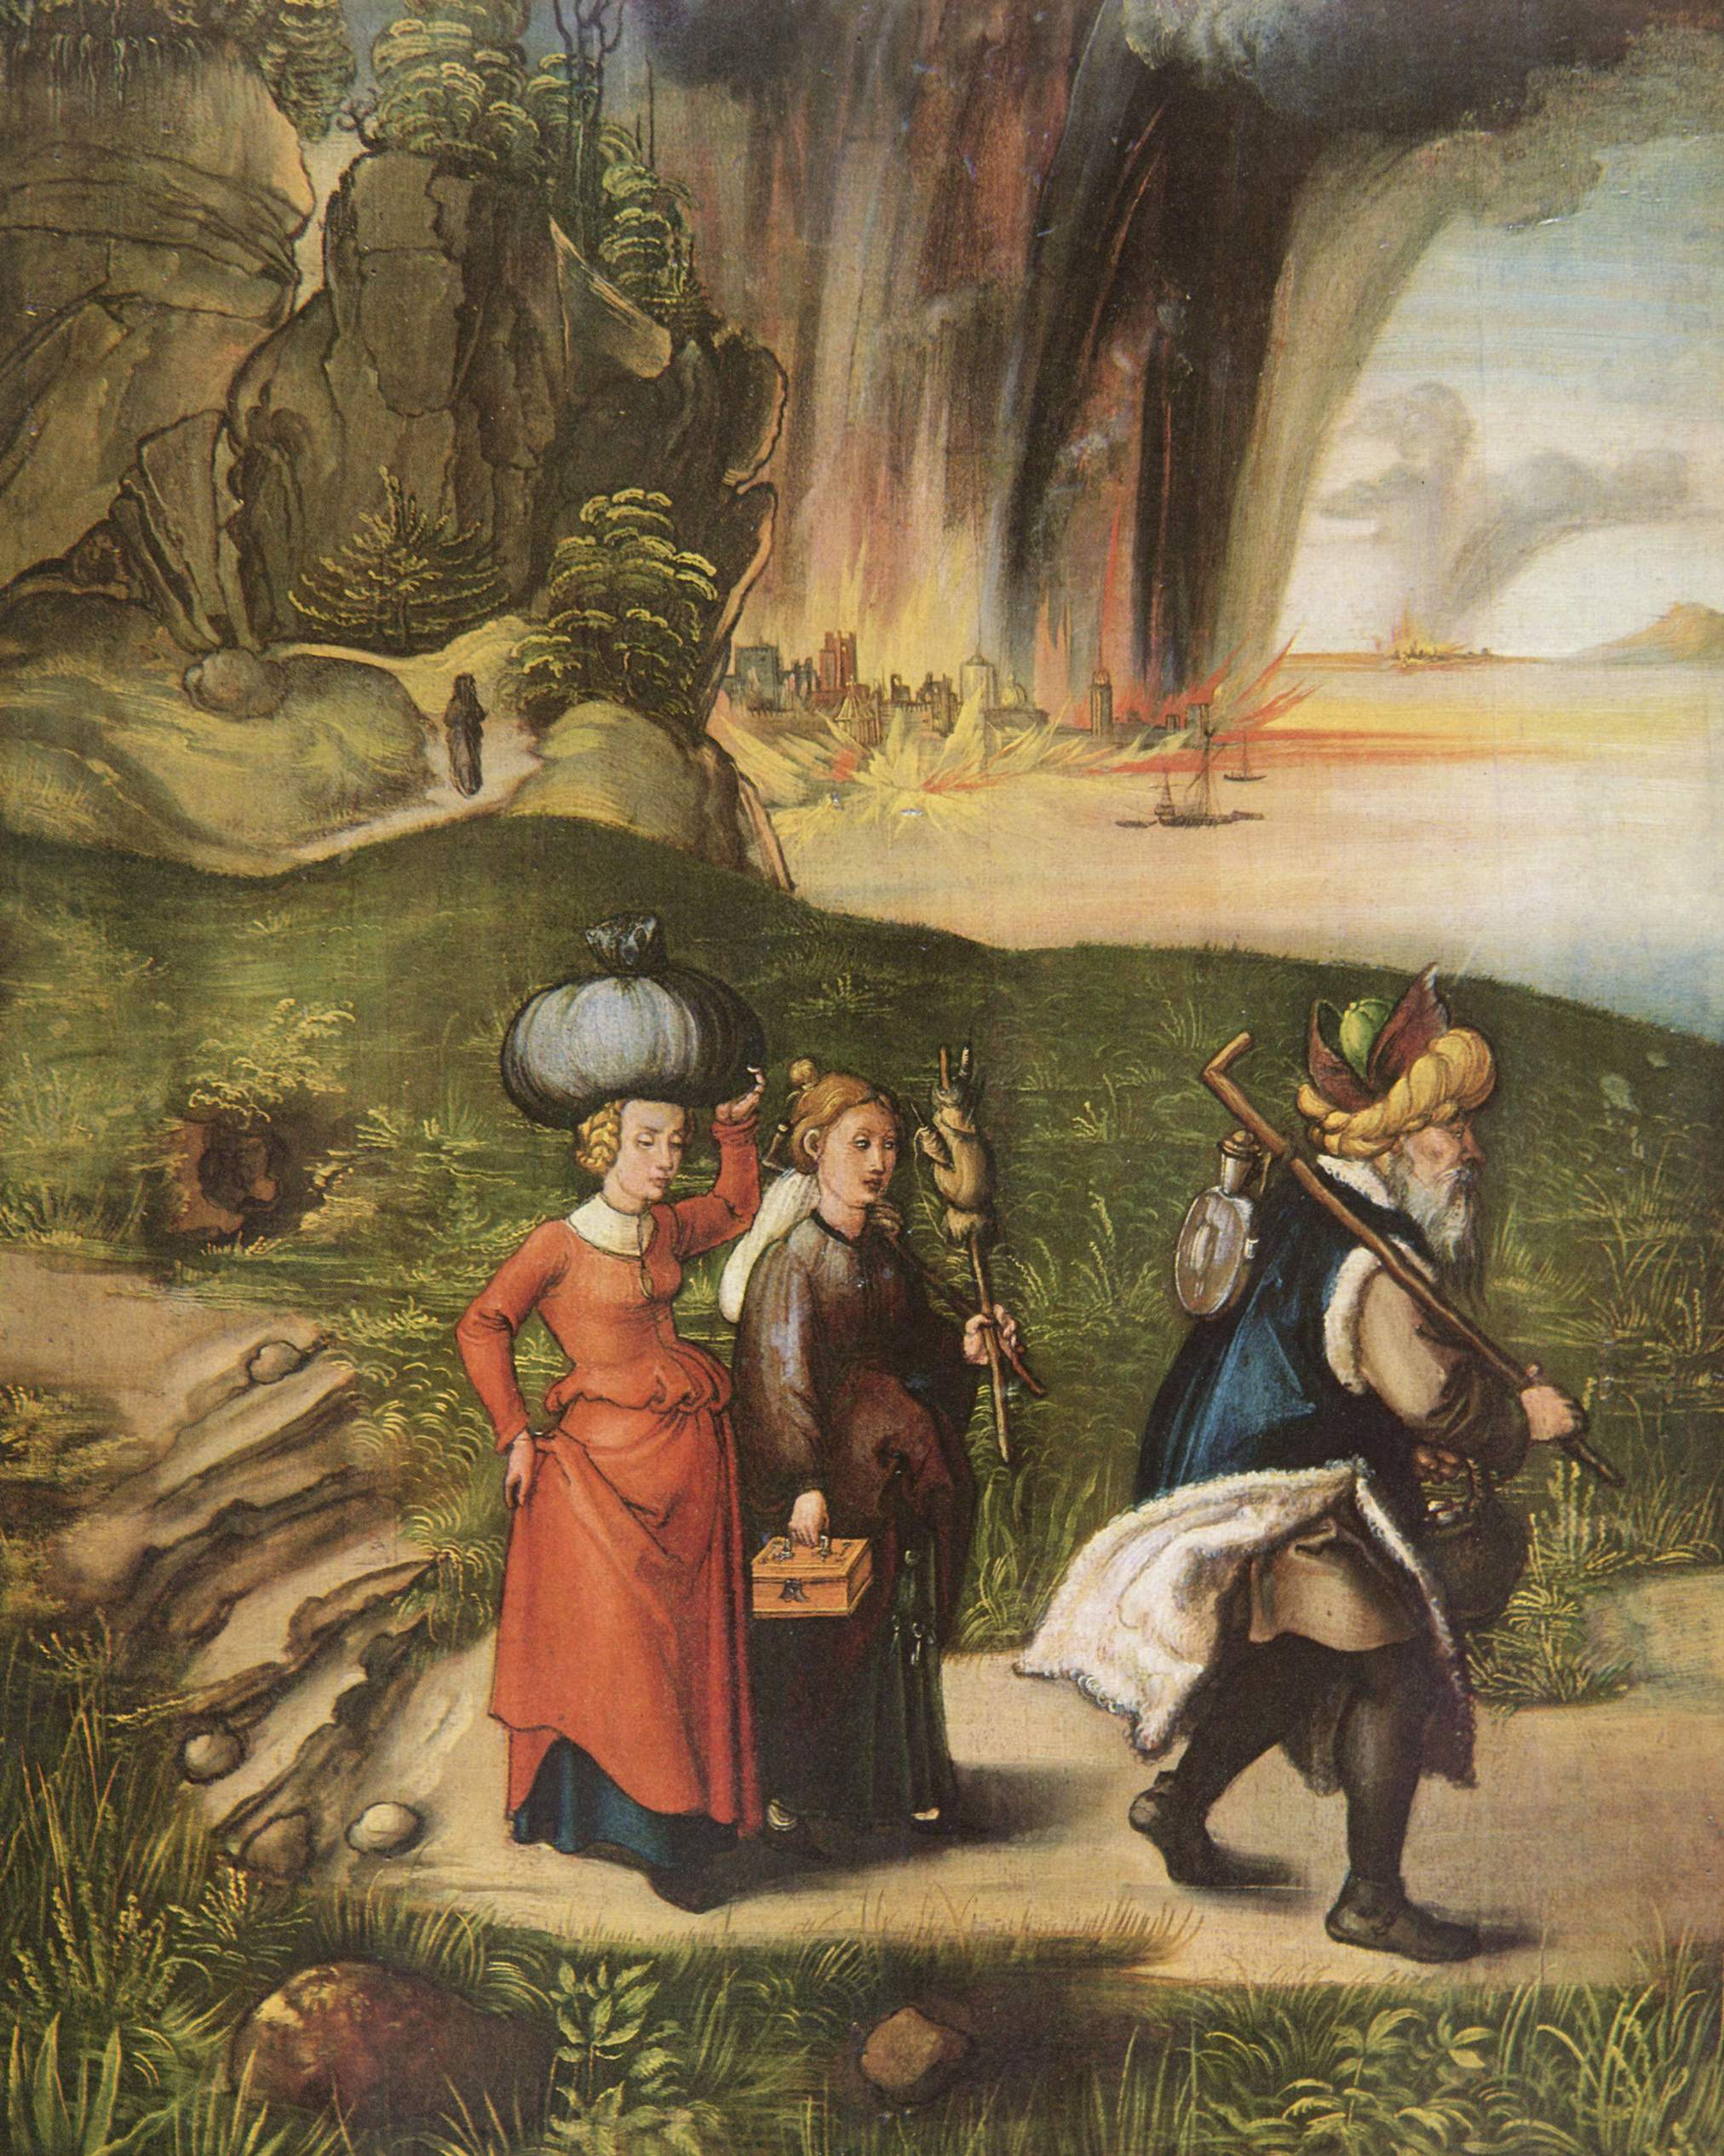 Lot and his family fleeing from sodom